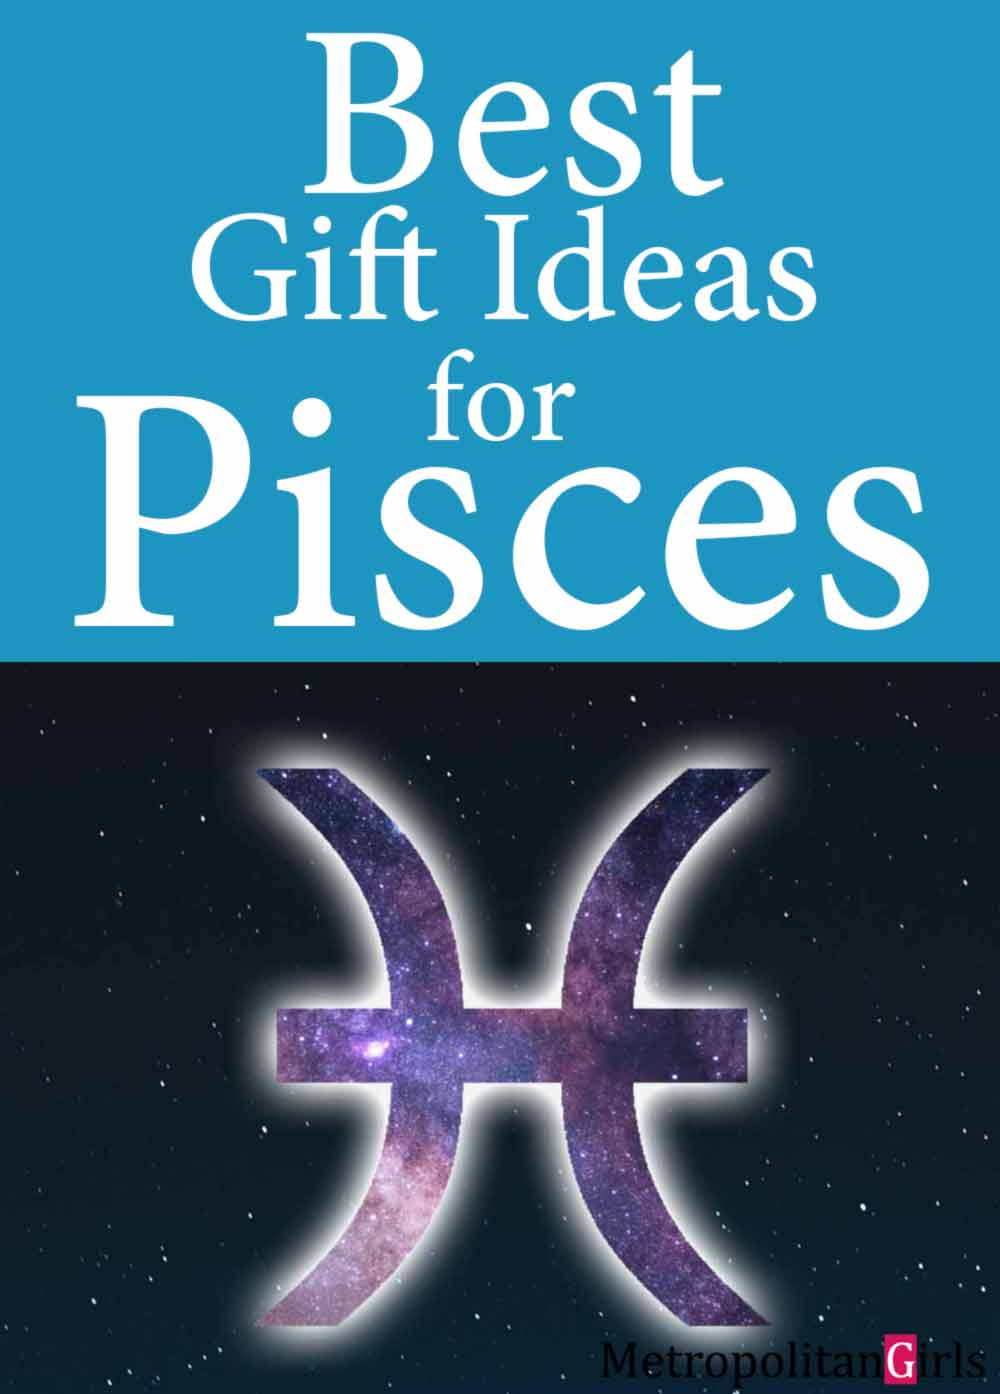 It's Pisces time! Find out what gifts does Pisces like in this zodiac gift guide dedicated to Pisces -- the sign of the fish.